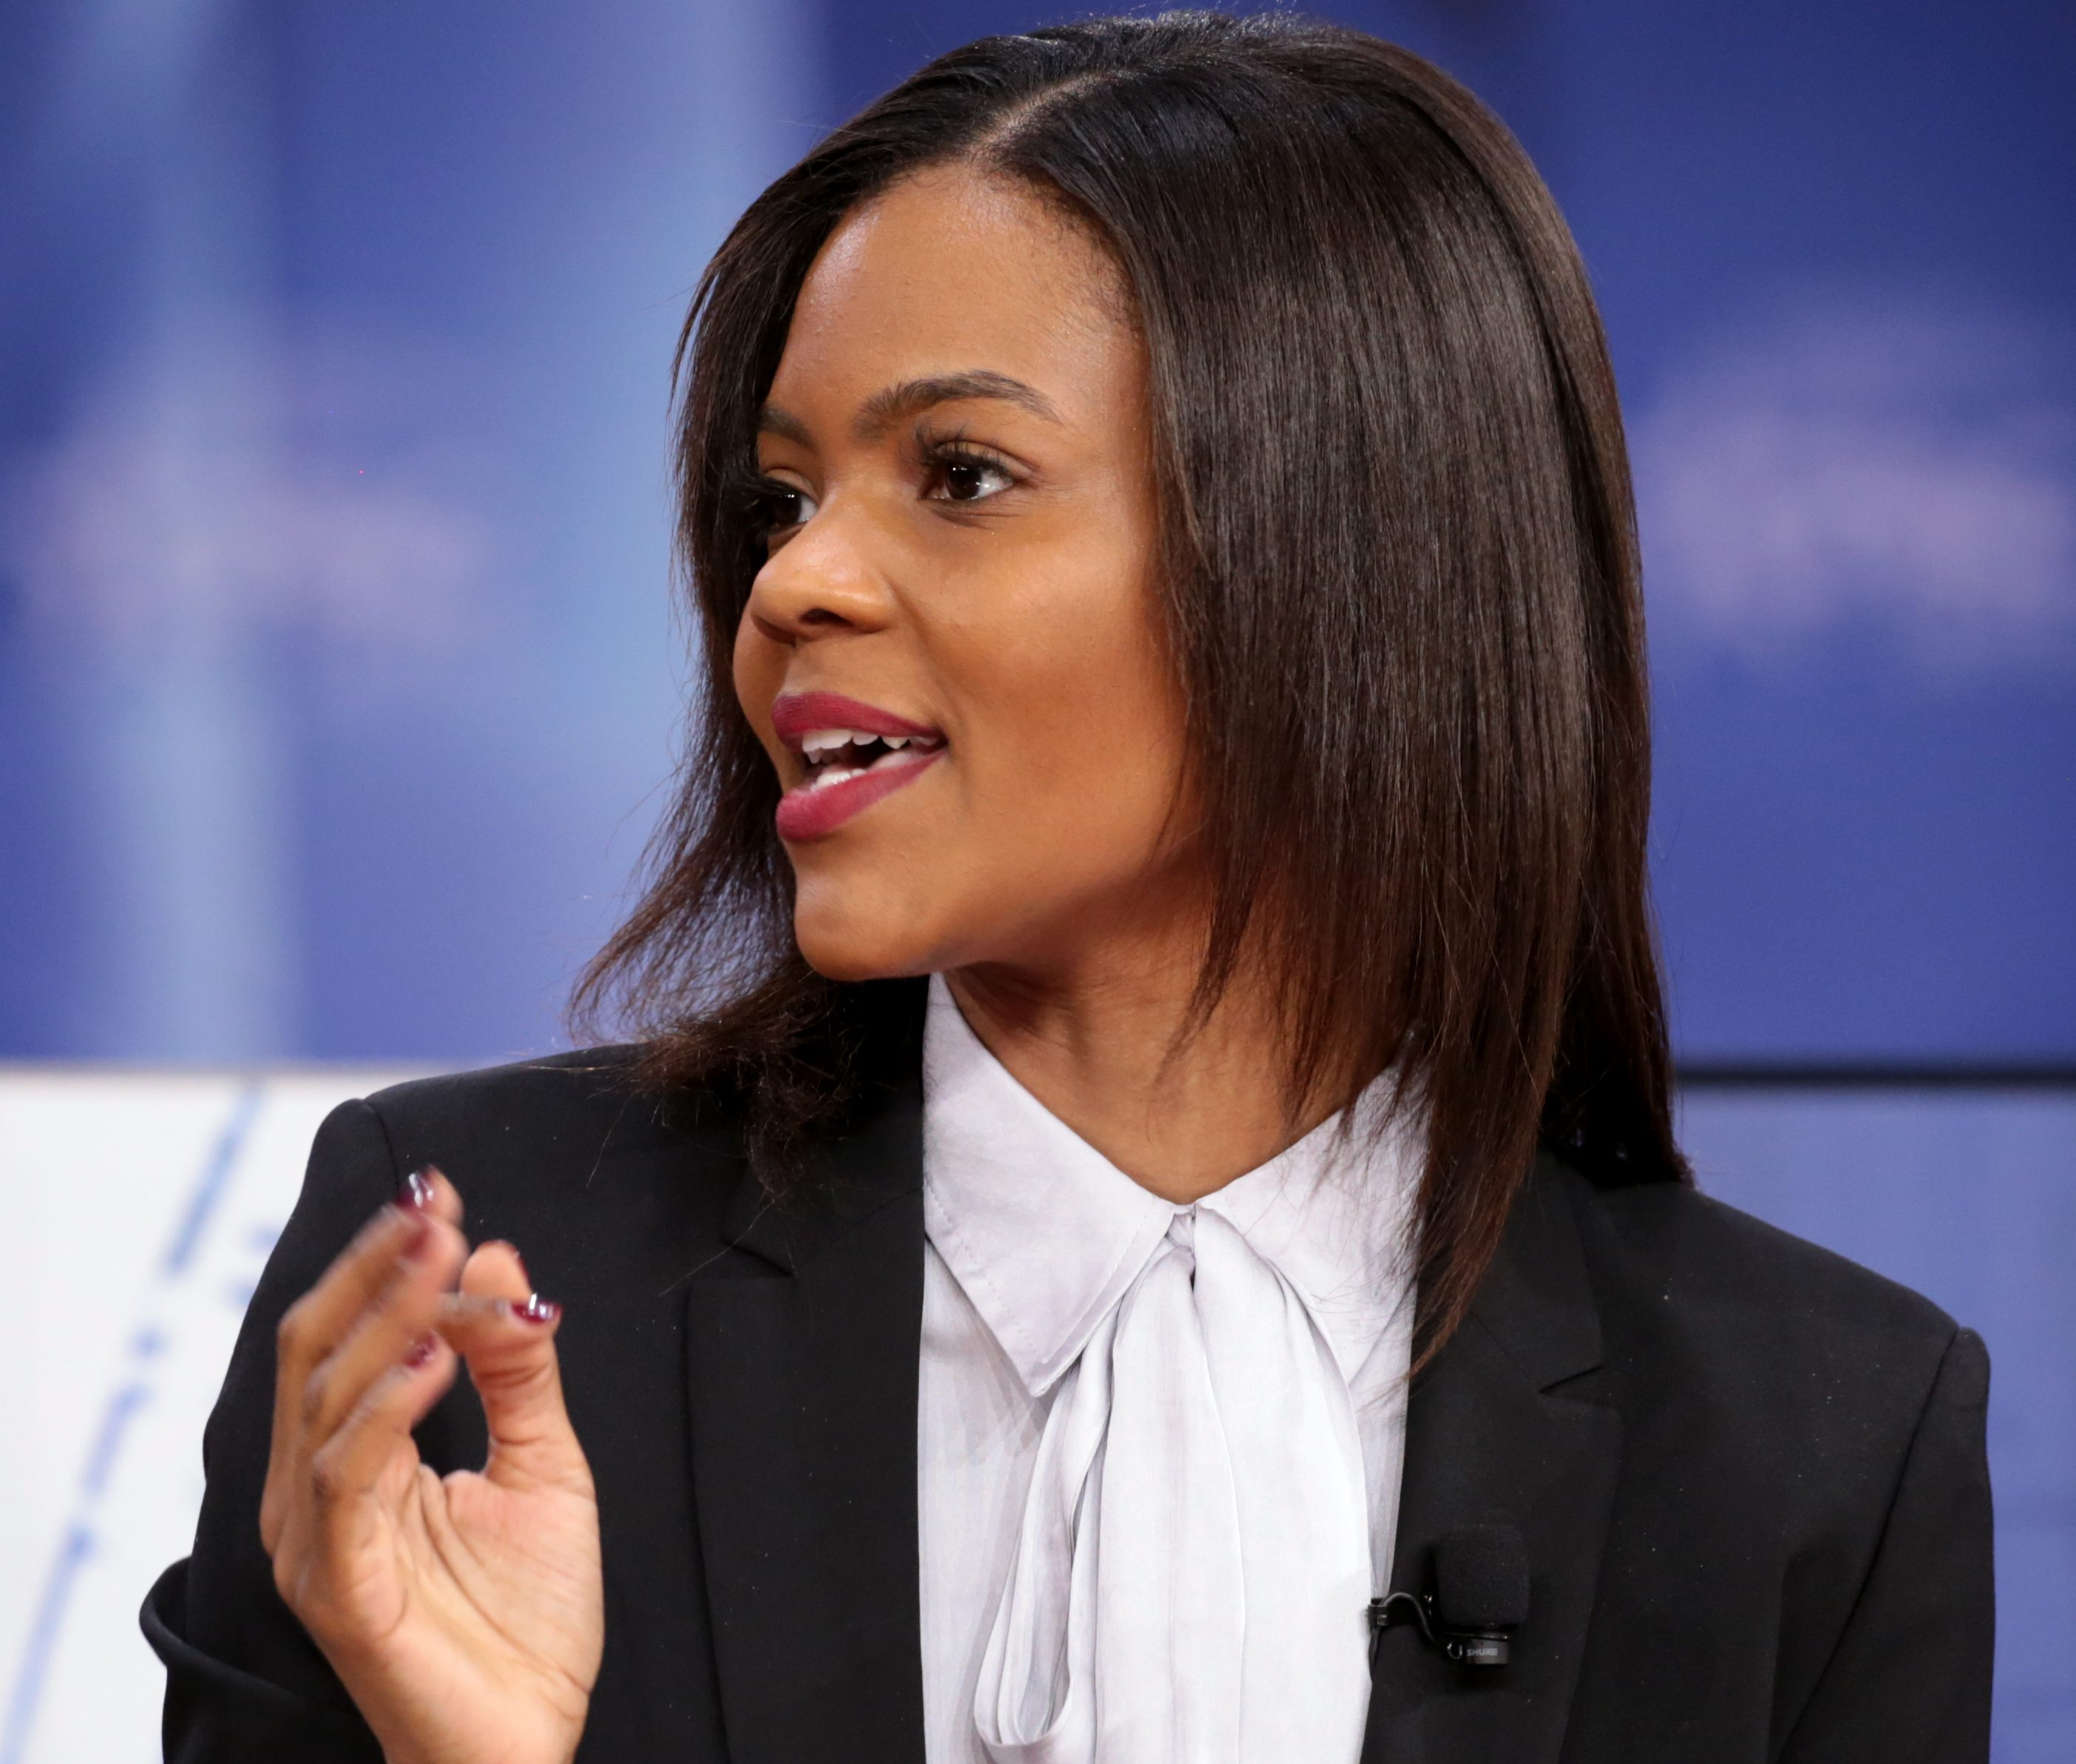 'Feminism tears women, I learned this too late' –  Candace Owen